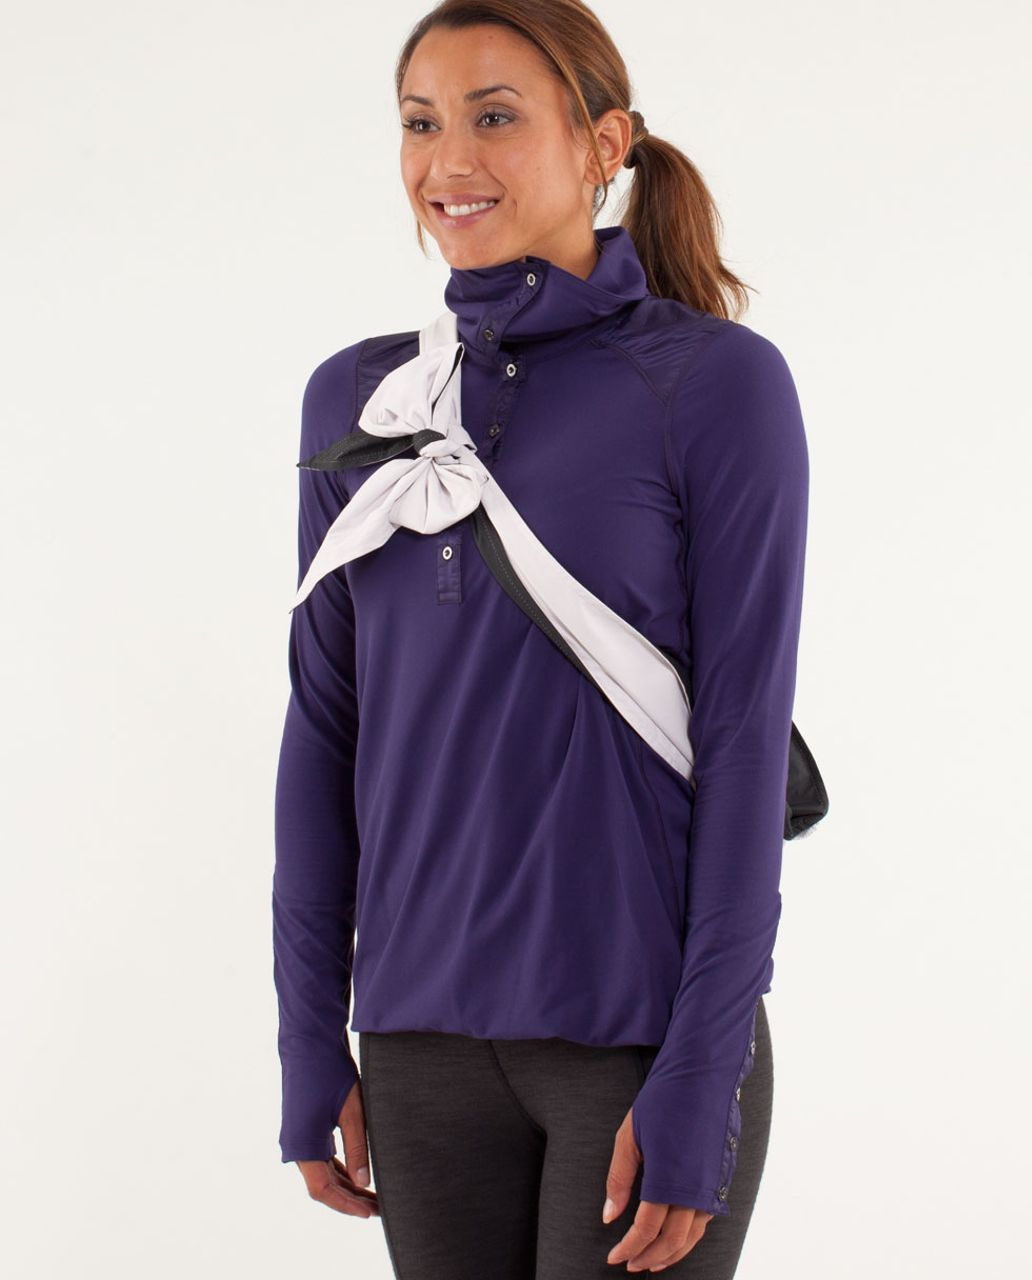 Lululemon Pedal Power Rain Jacket - Neutral Blush / Black - lulu ...